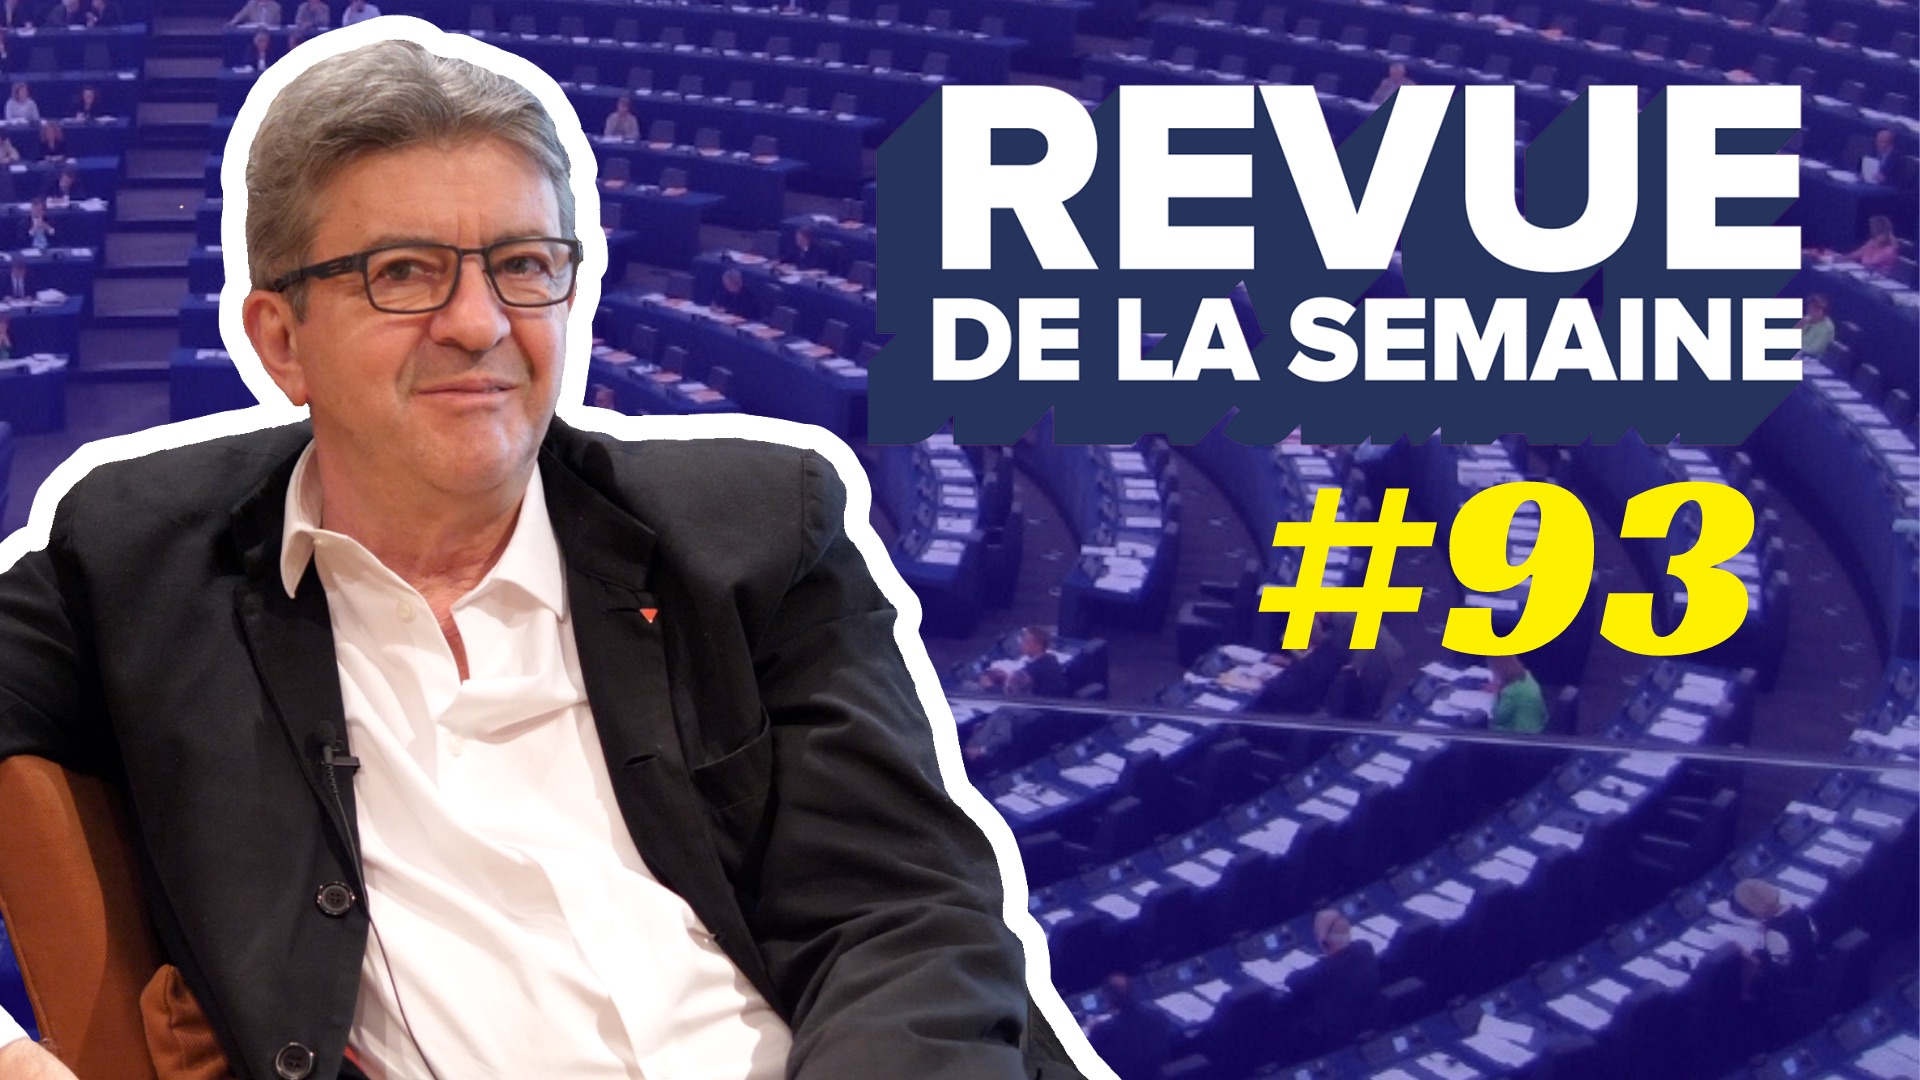 rdls 93 europoeennes melenchon